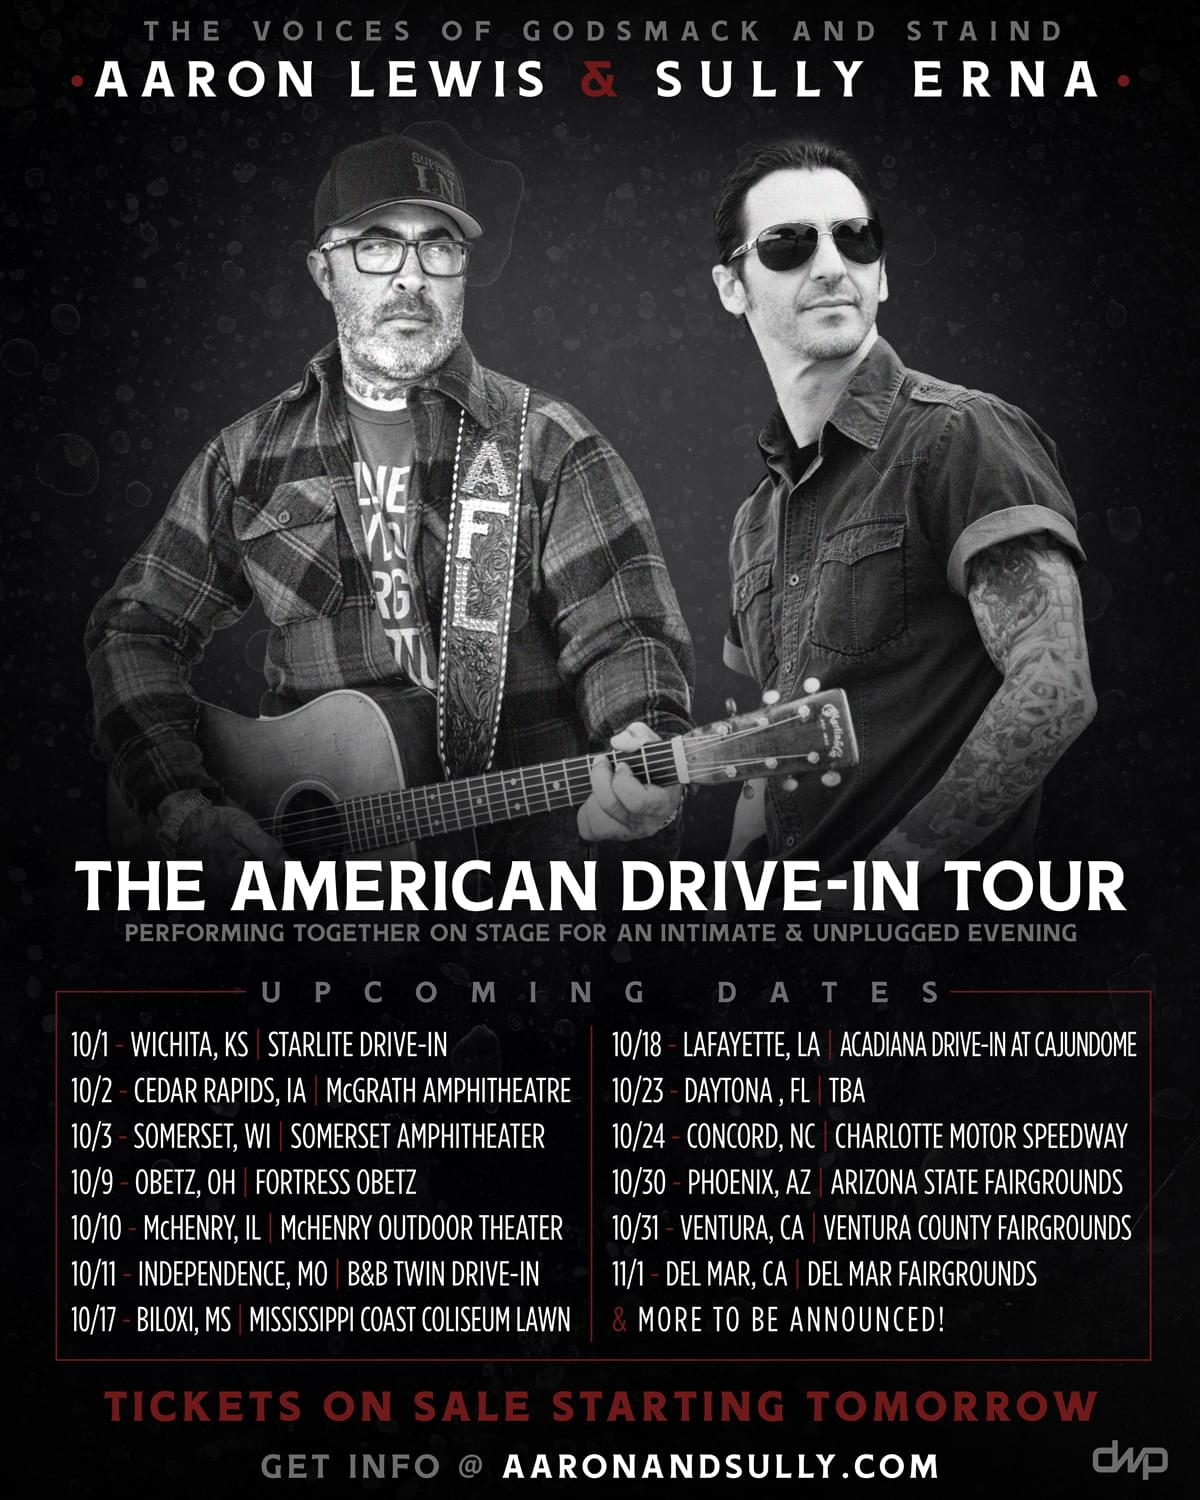 The American Drive-In Tour w/ Aaron Lewis & Sully Erna The Voices of Godsmack & Staind @ Charlotte Motor Speedway